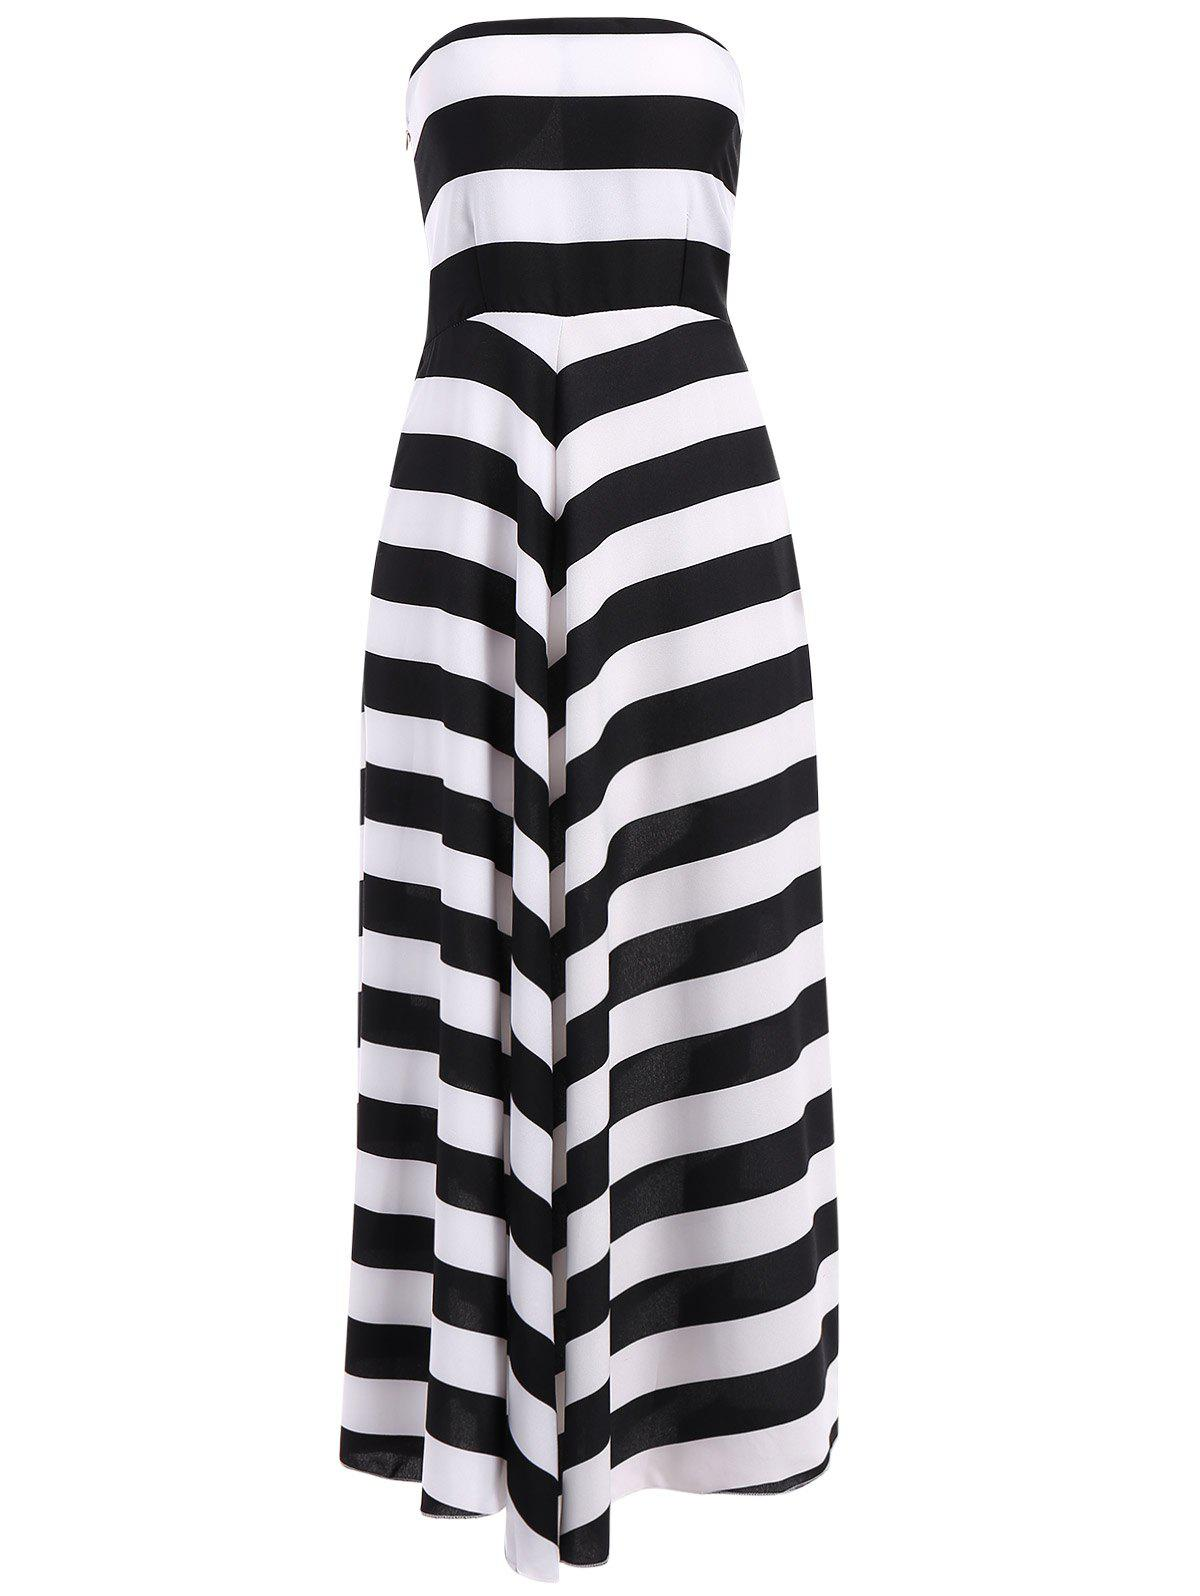 Trendy Nipped Waist Color Block Striped Strapless Maxi Dress women color block striped print tie waist dress